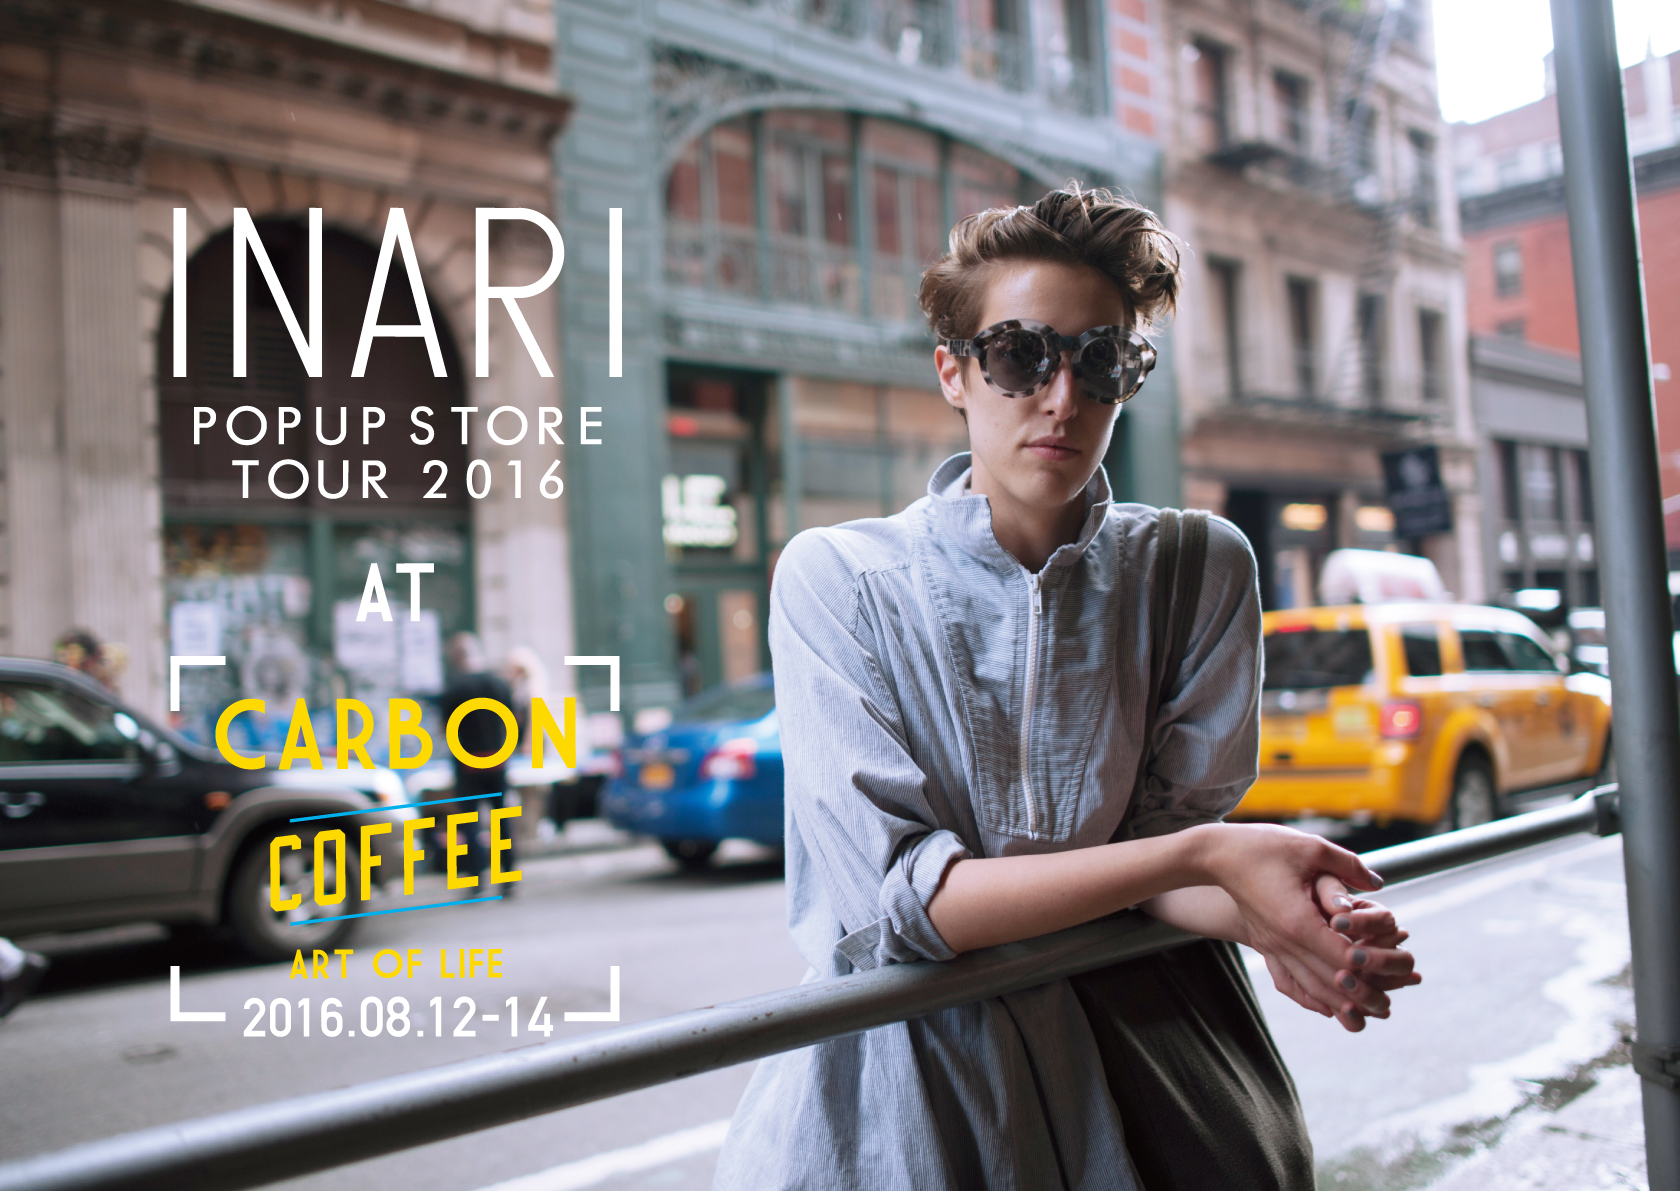 CARBONにてEYE WEAR ブランド、<INARI> のPHOTO EXHIBITION&POPUP SHOPを開催!